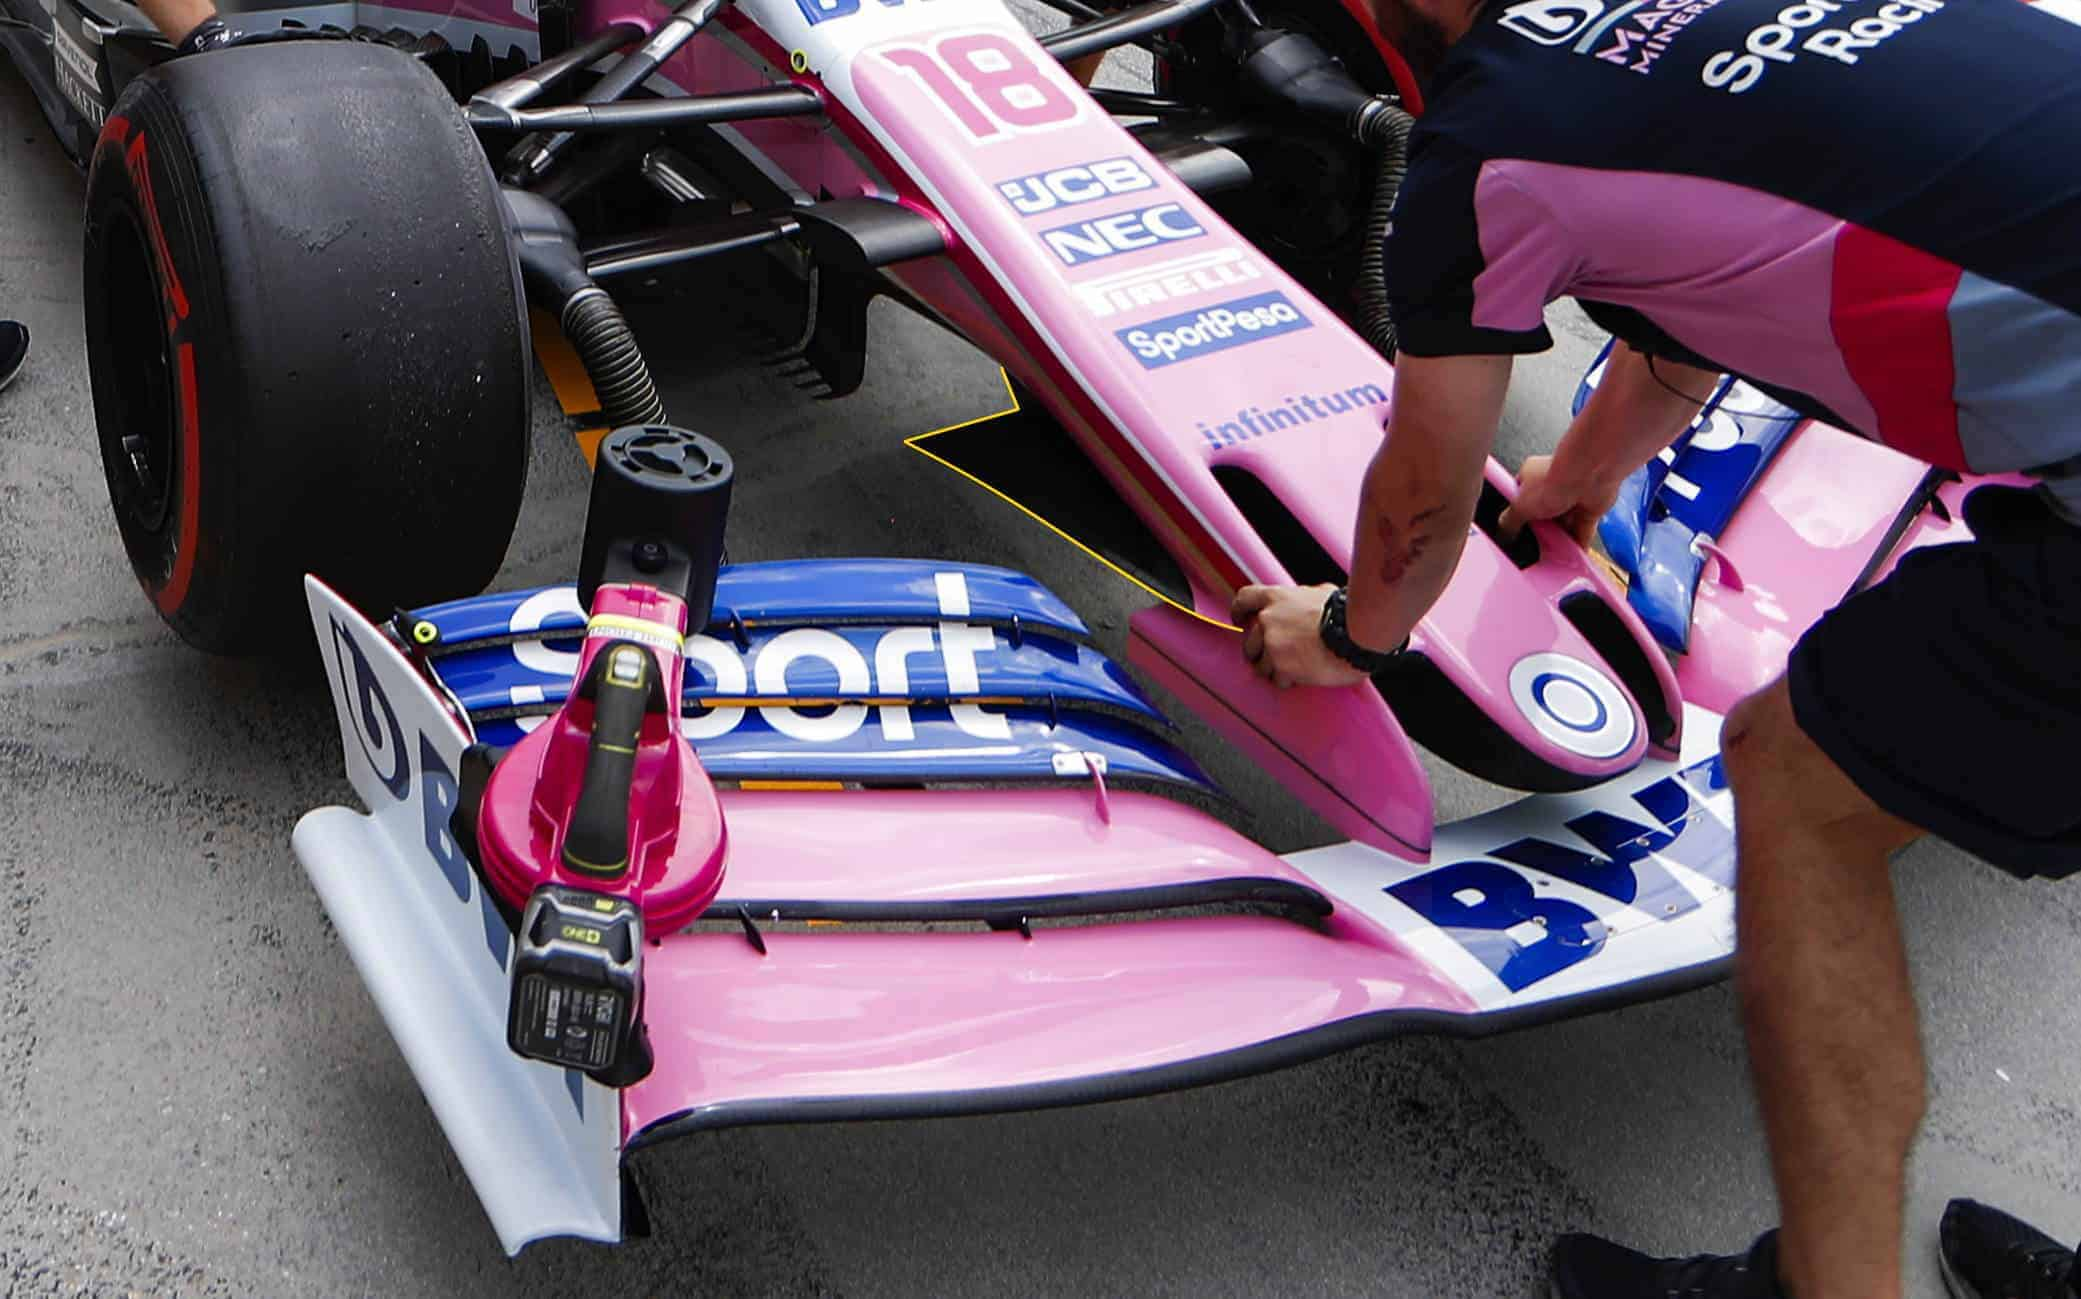 Racing Point RP19 Hungarian GP F1 2019 nose and front wing garage Photo Racing Point